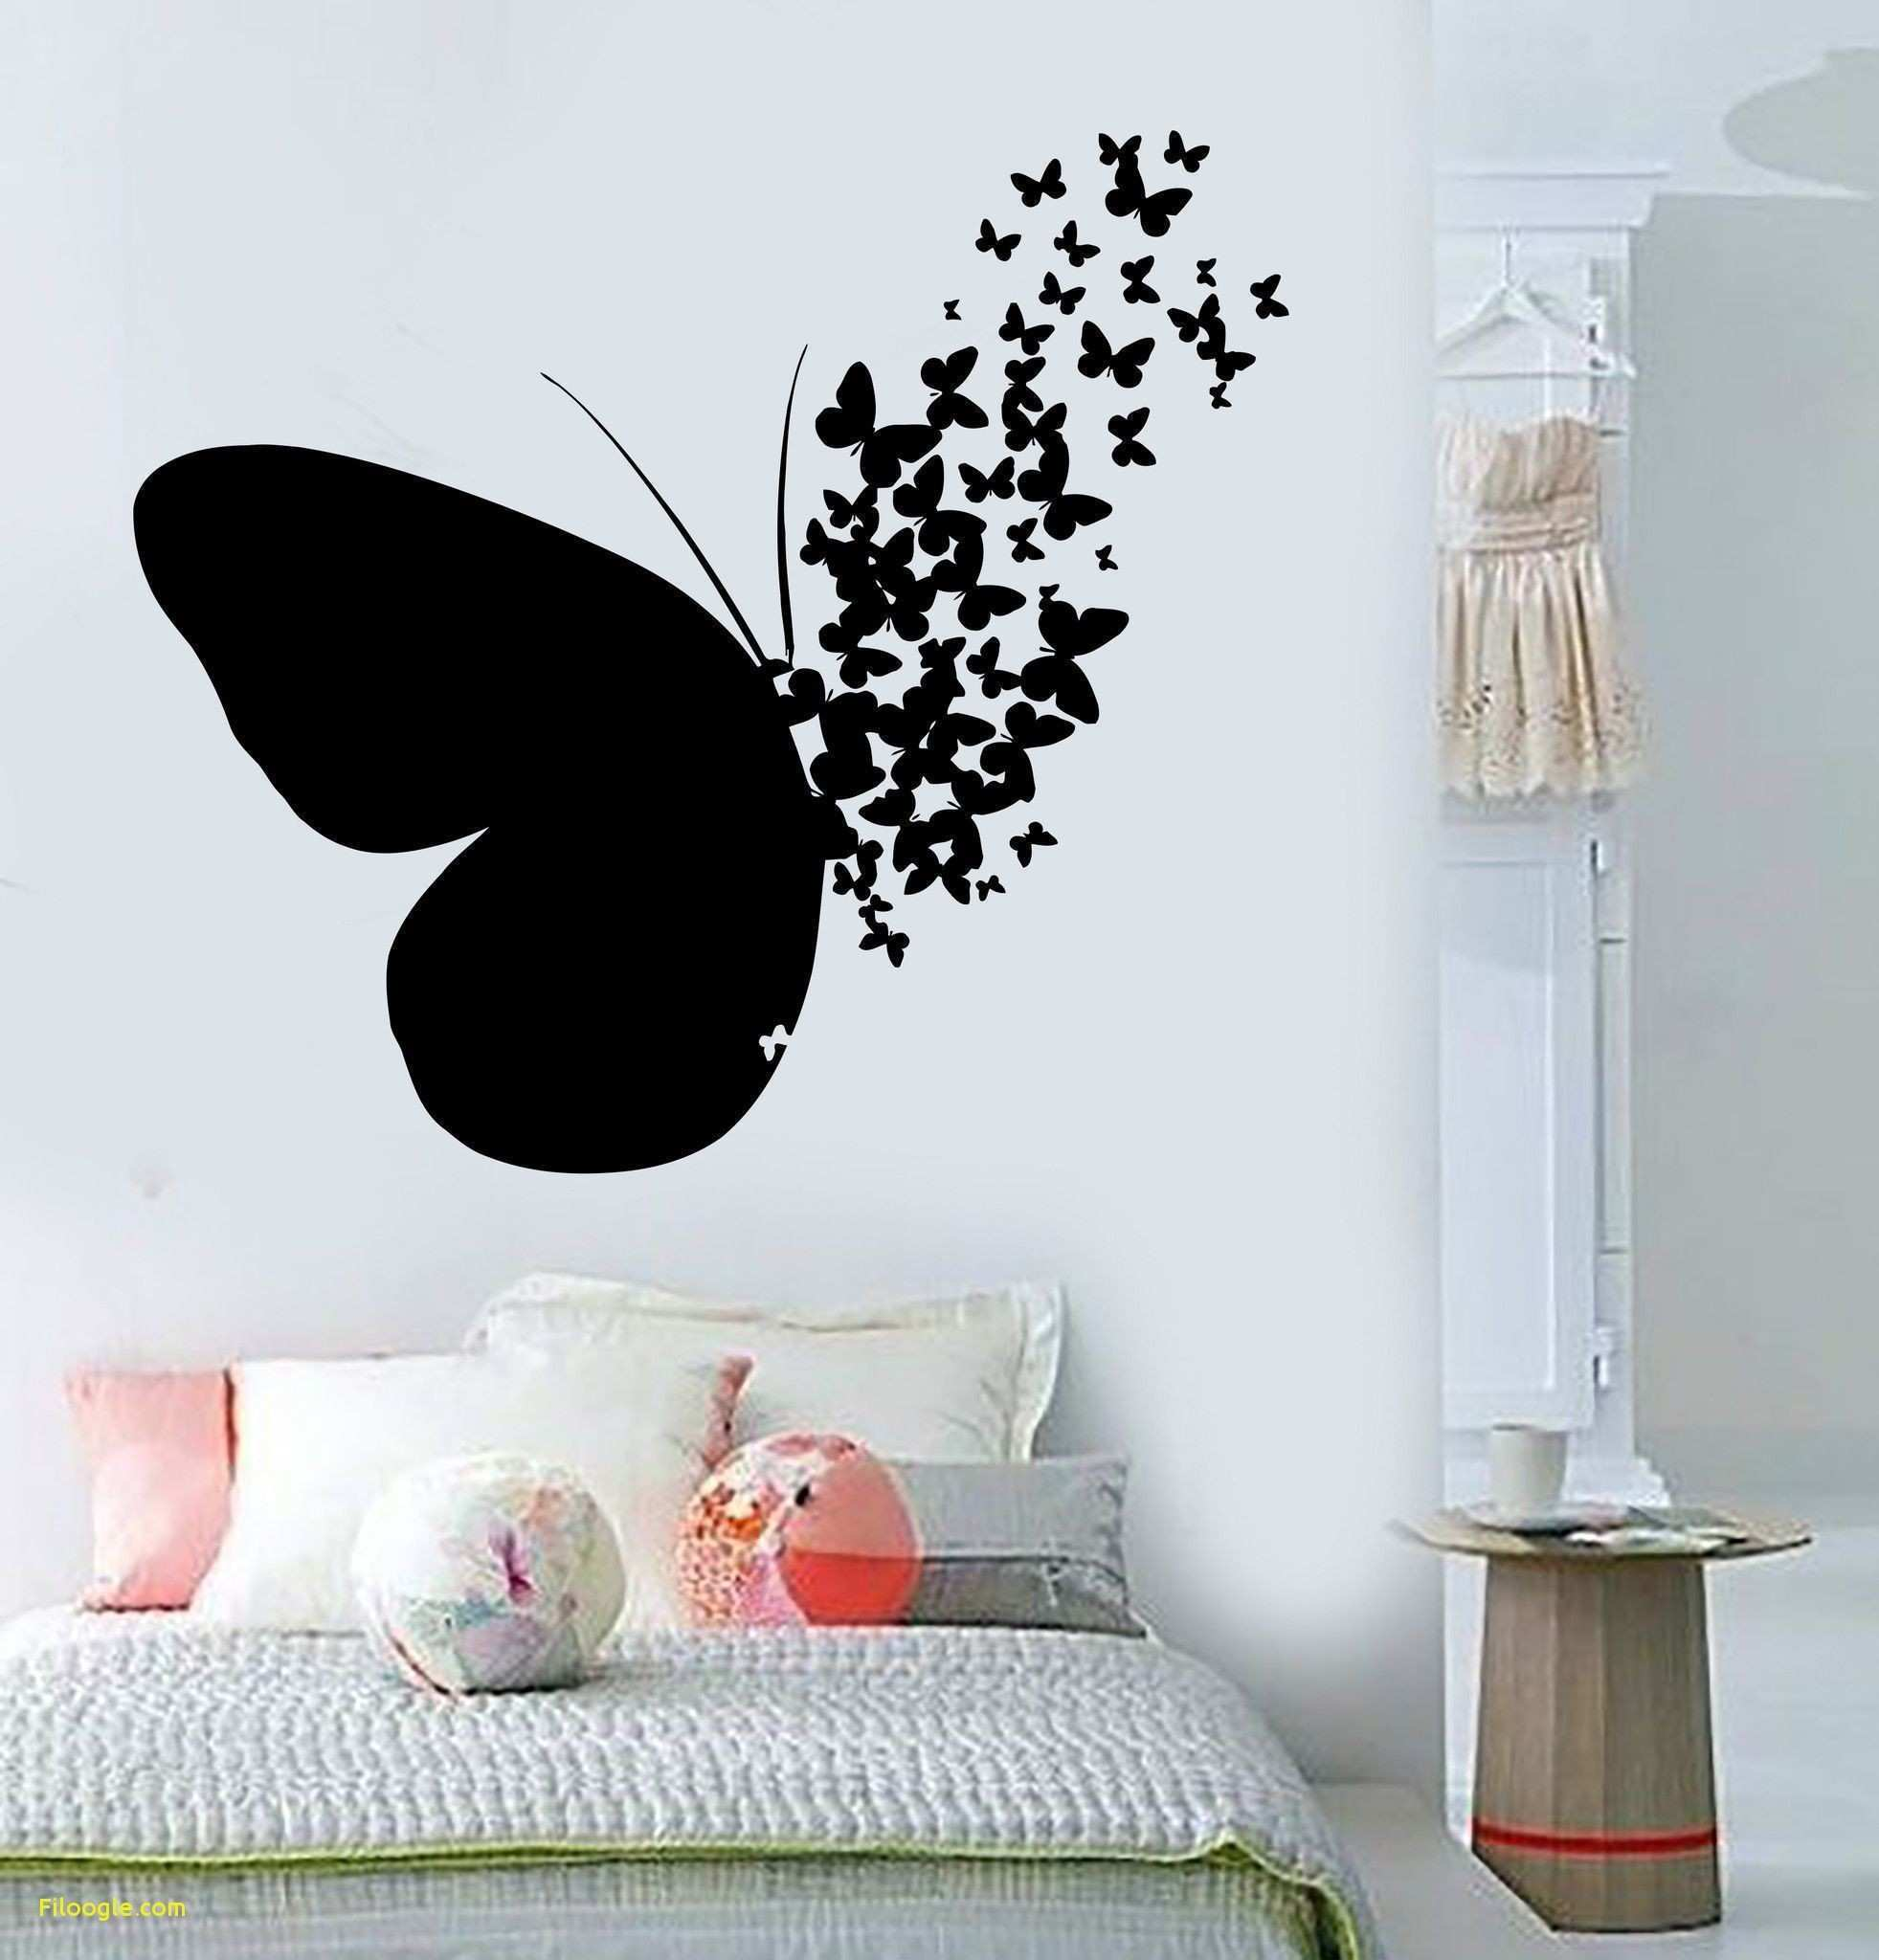 Home Decor 3d Stickers Inspirational Wall Decals for Bedroom Unique